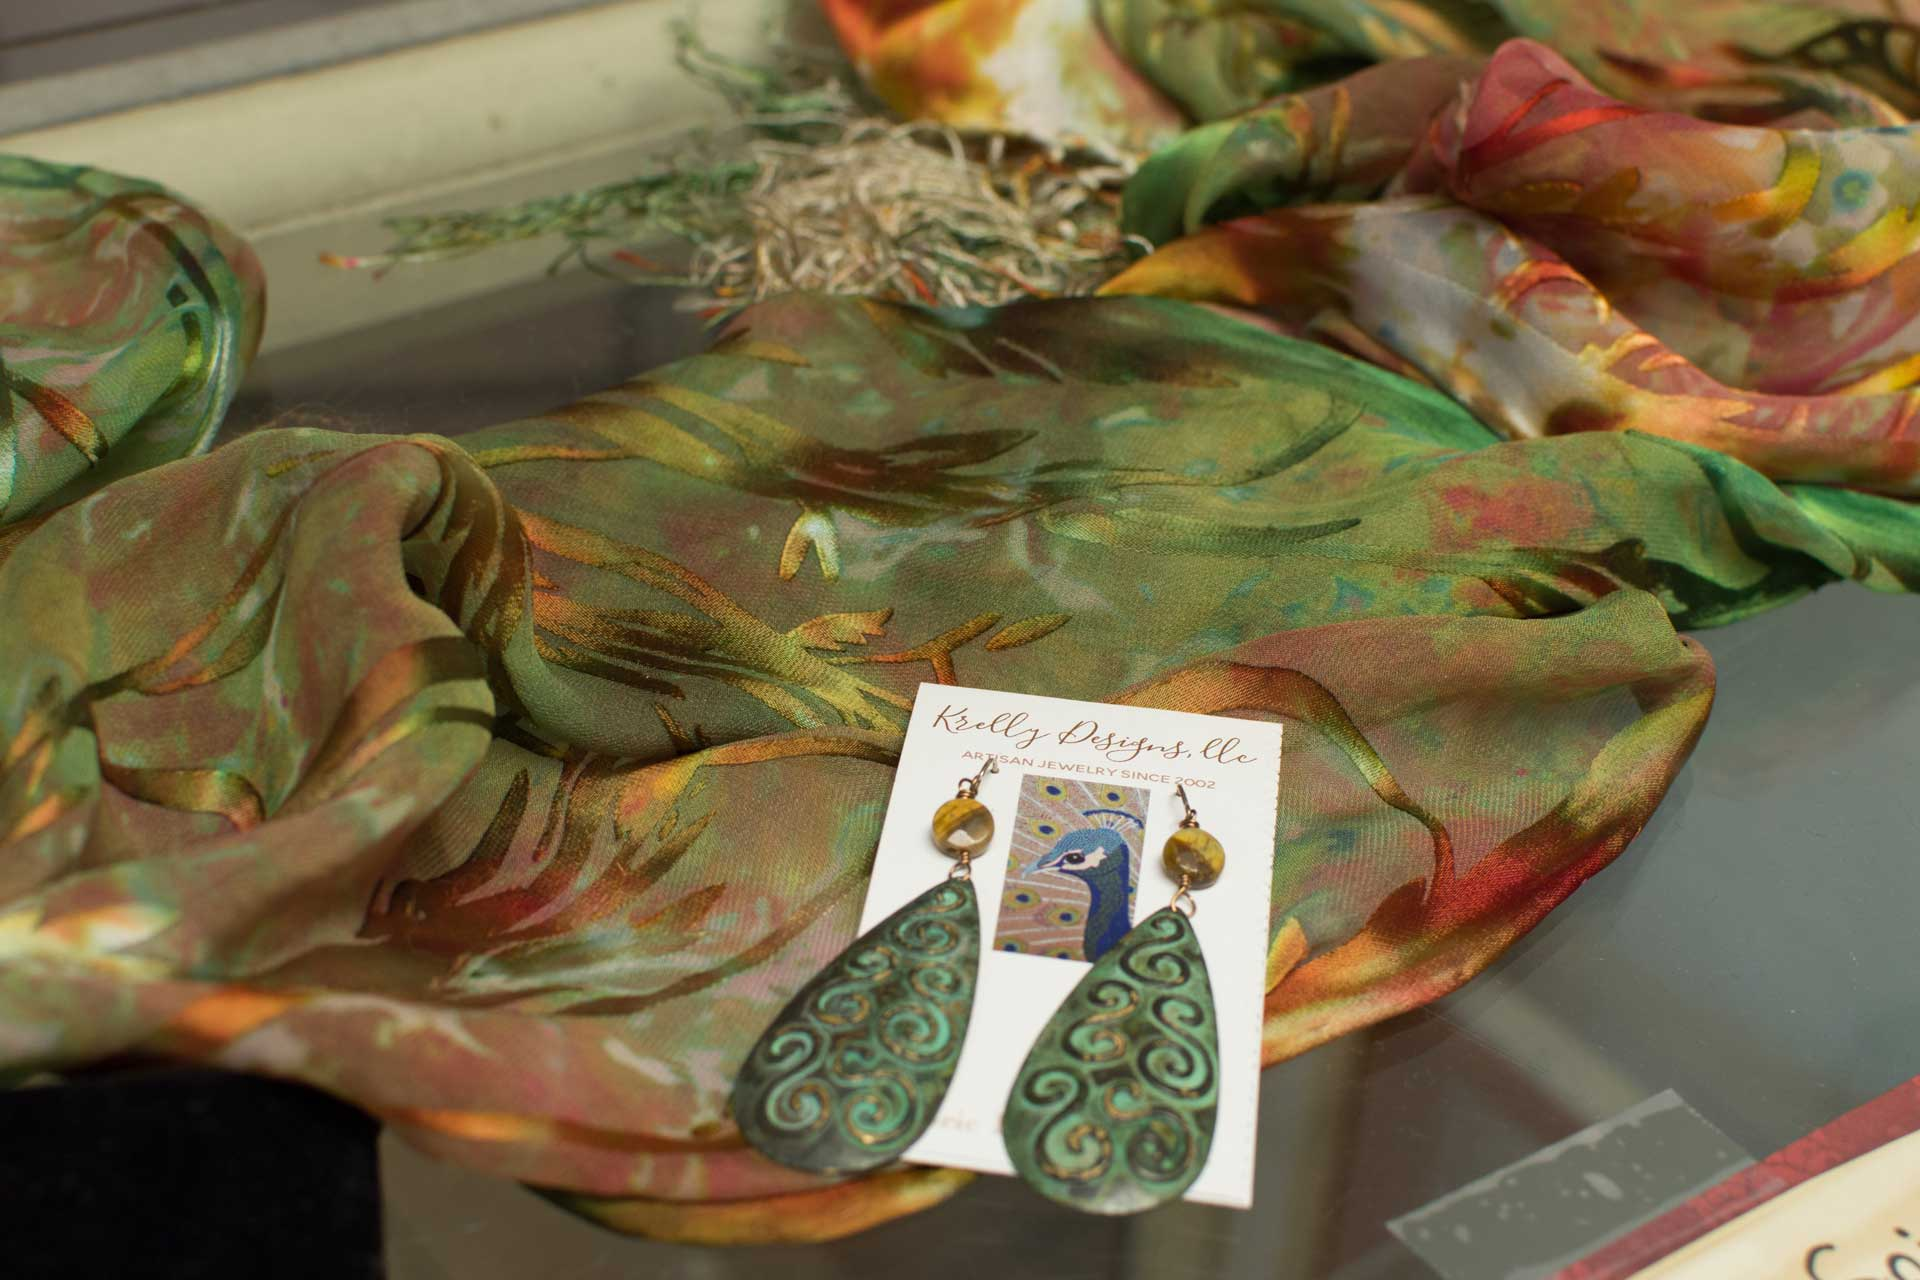 Earrings and Scarves by Krelly Designs